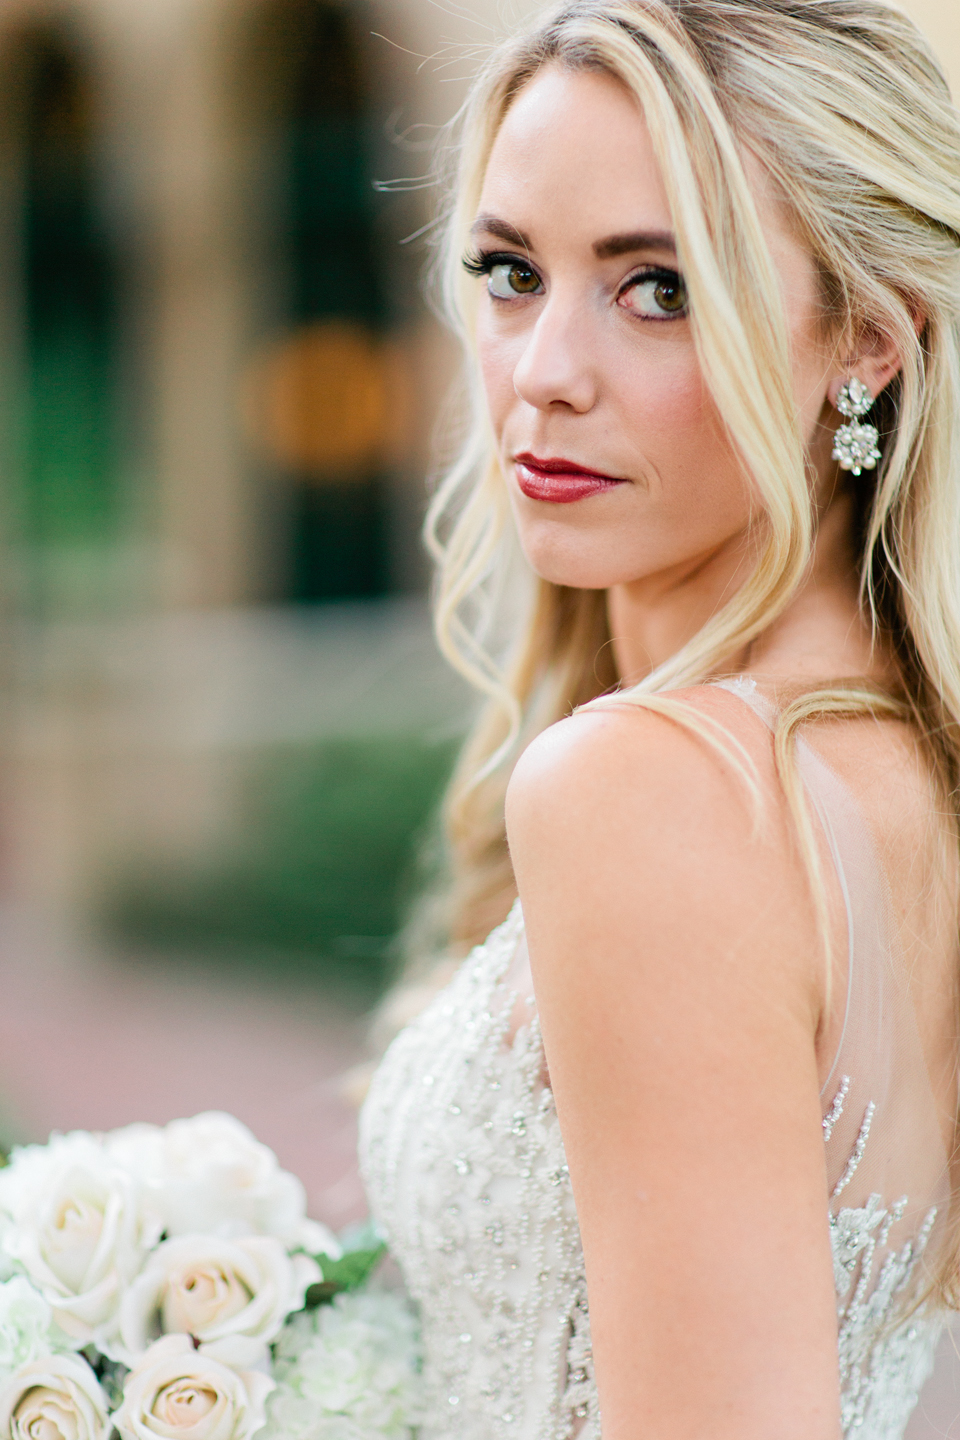 Image of a bride in a wedding gown, glancing over her shoulder.  Her hair is long and curled.  She is standing in front of the Epping Forest Yacht Club in Jacksonville, Florida